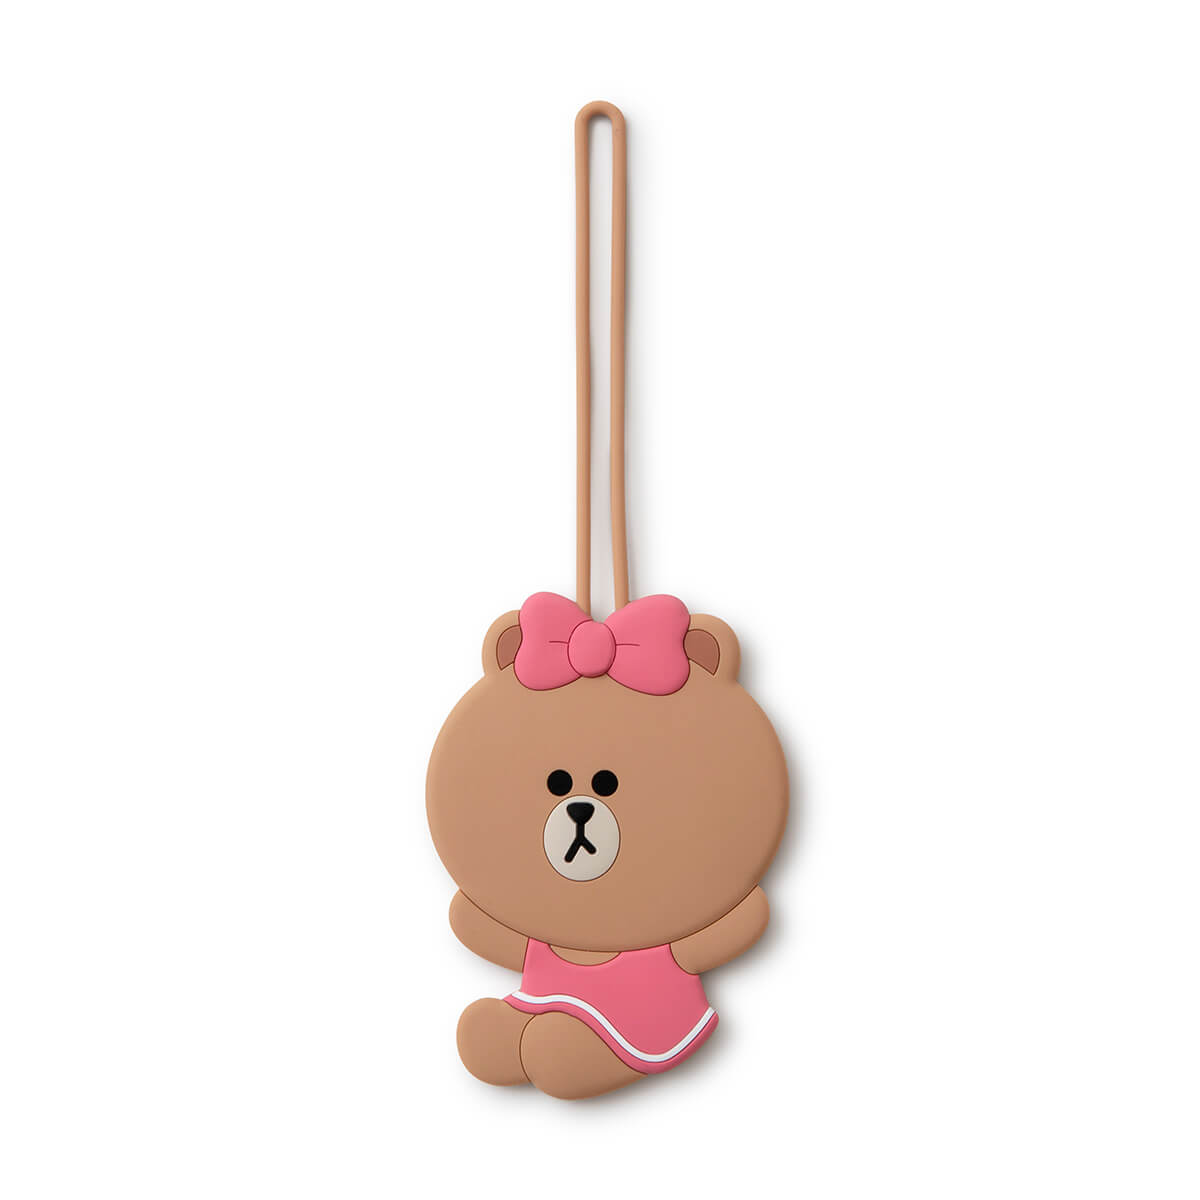 CHOCO Silicone Luggage Name Tag